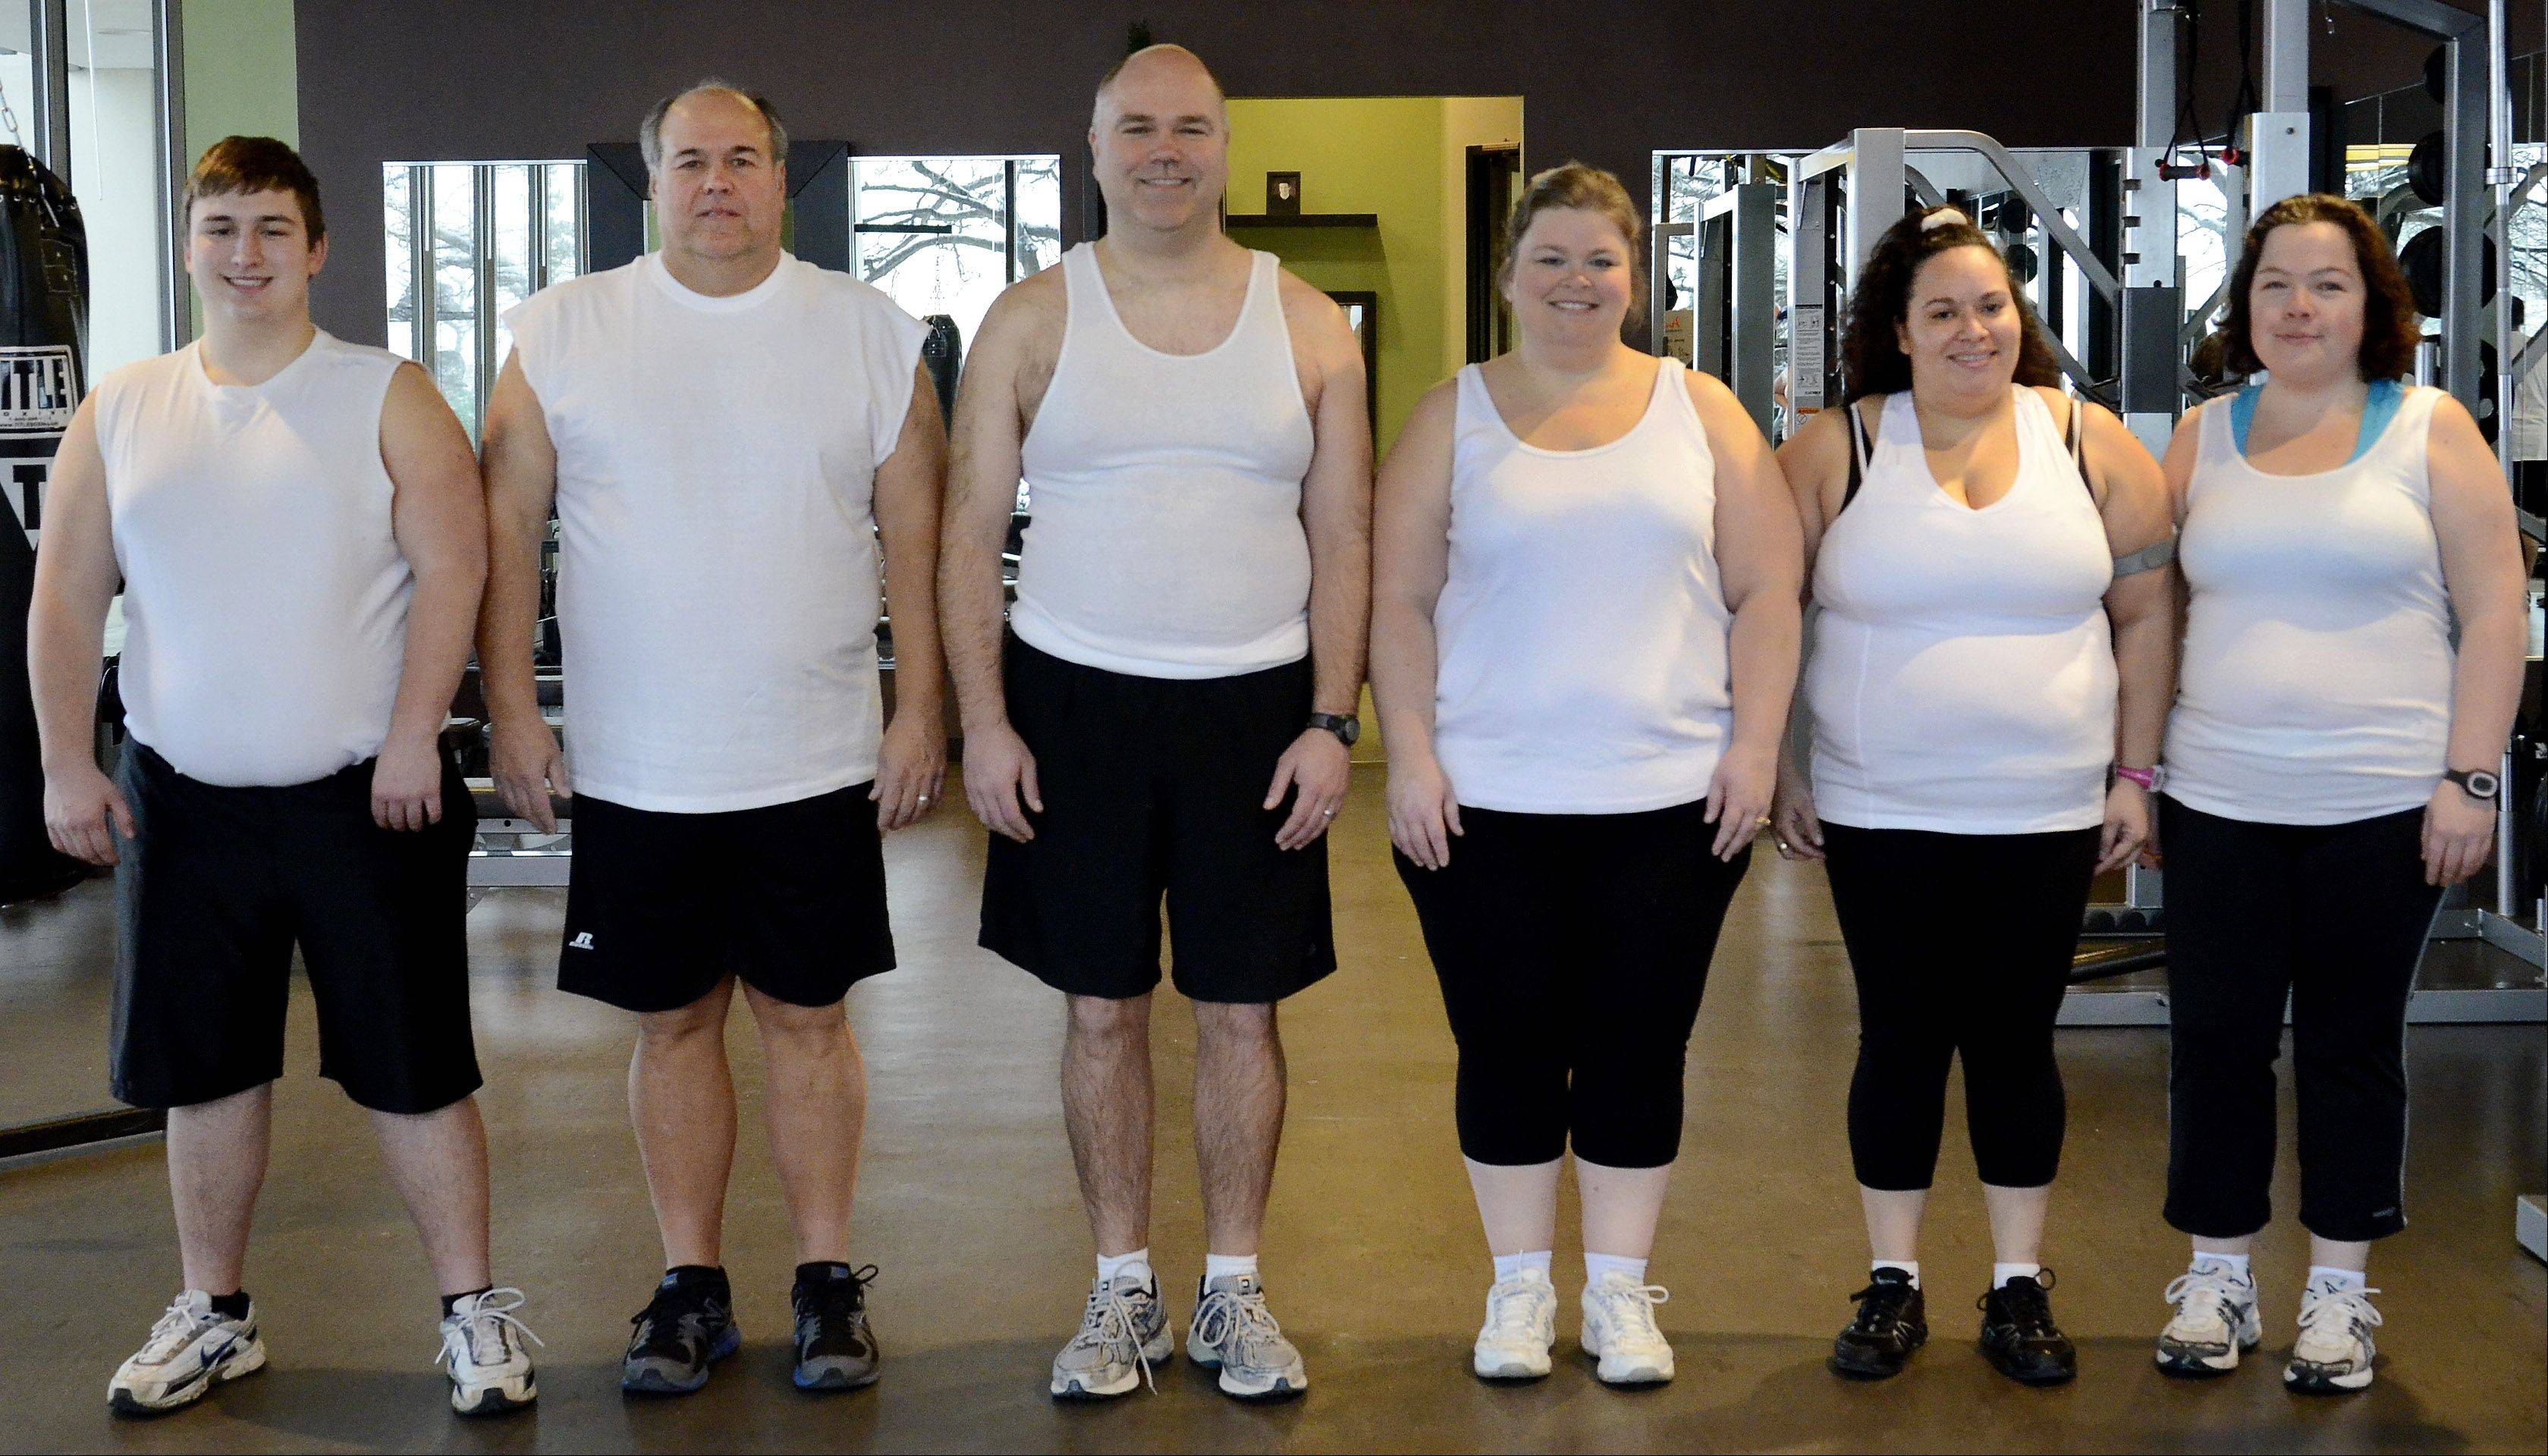 Introducing the 2013 Fittest Loser Challenge contestants: Joe Gundling, left, Mike Paulo, Greg Moehrlin, Megan McCarthy-Cook, Marianne Costales-Roman and Karen Castillo.